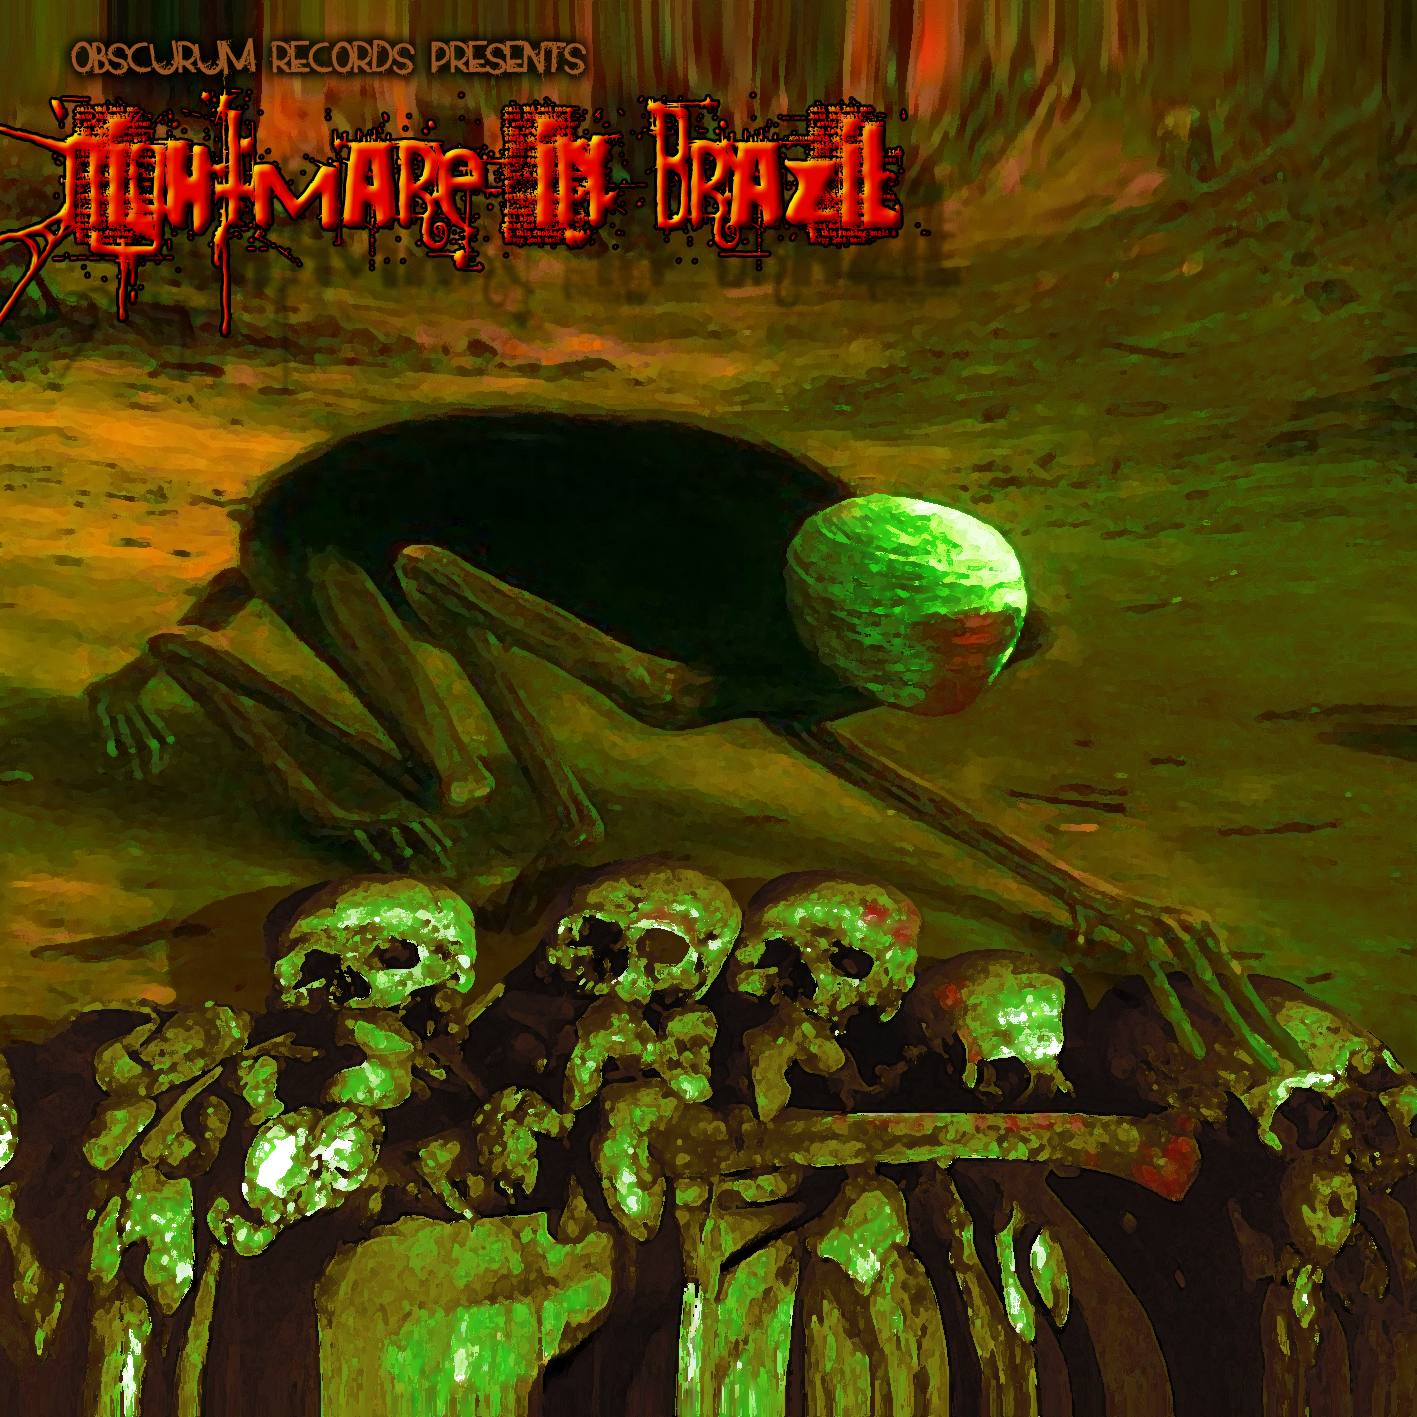 Nightmare in Brazil Cover - 300 dpi